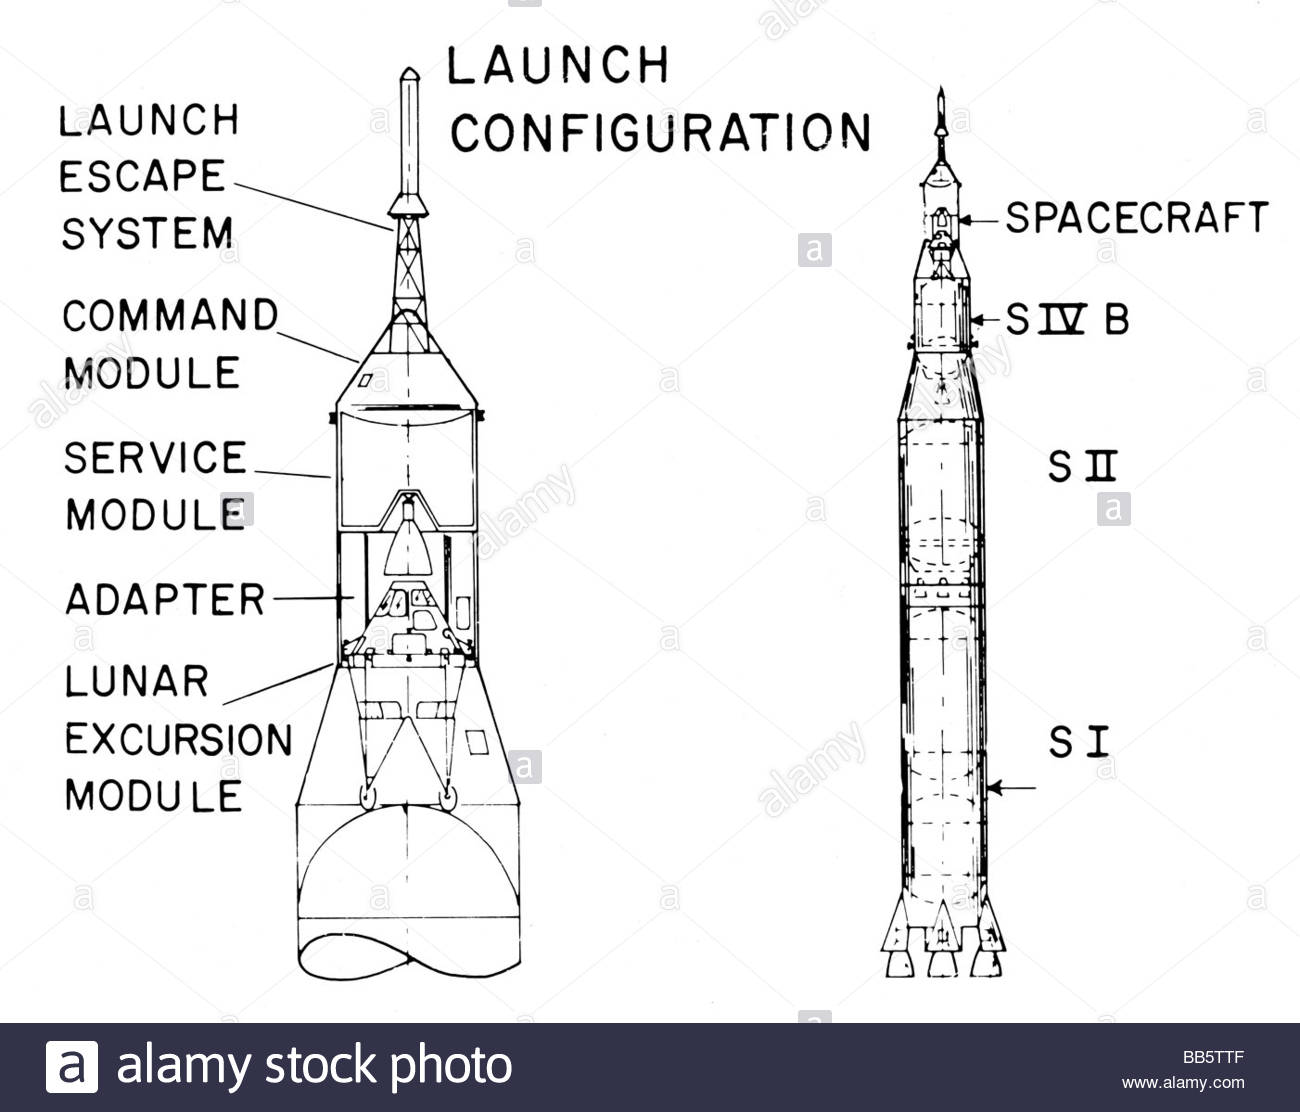 apollo rocket drawing - photo #12